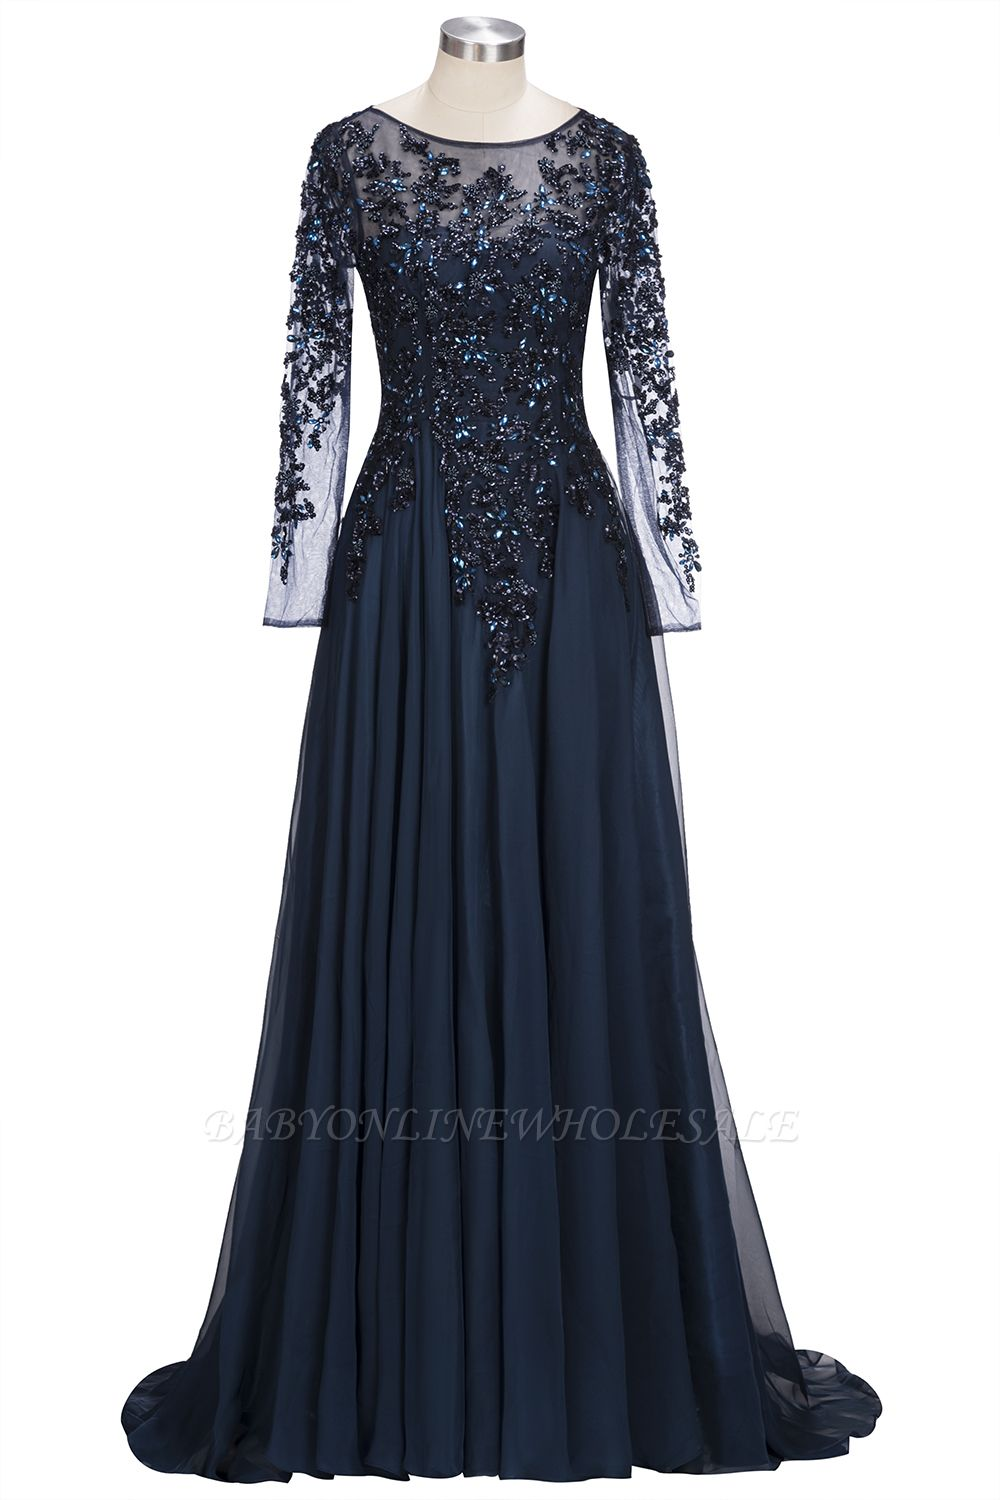 e89289d27a5b ROWENA | A-line Floor Length Long Sleeves Crystals Tulle Prom Dresses |  www.babyonlinewholesale.com